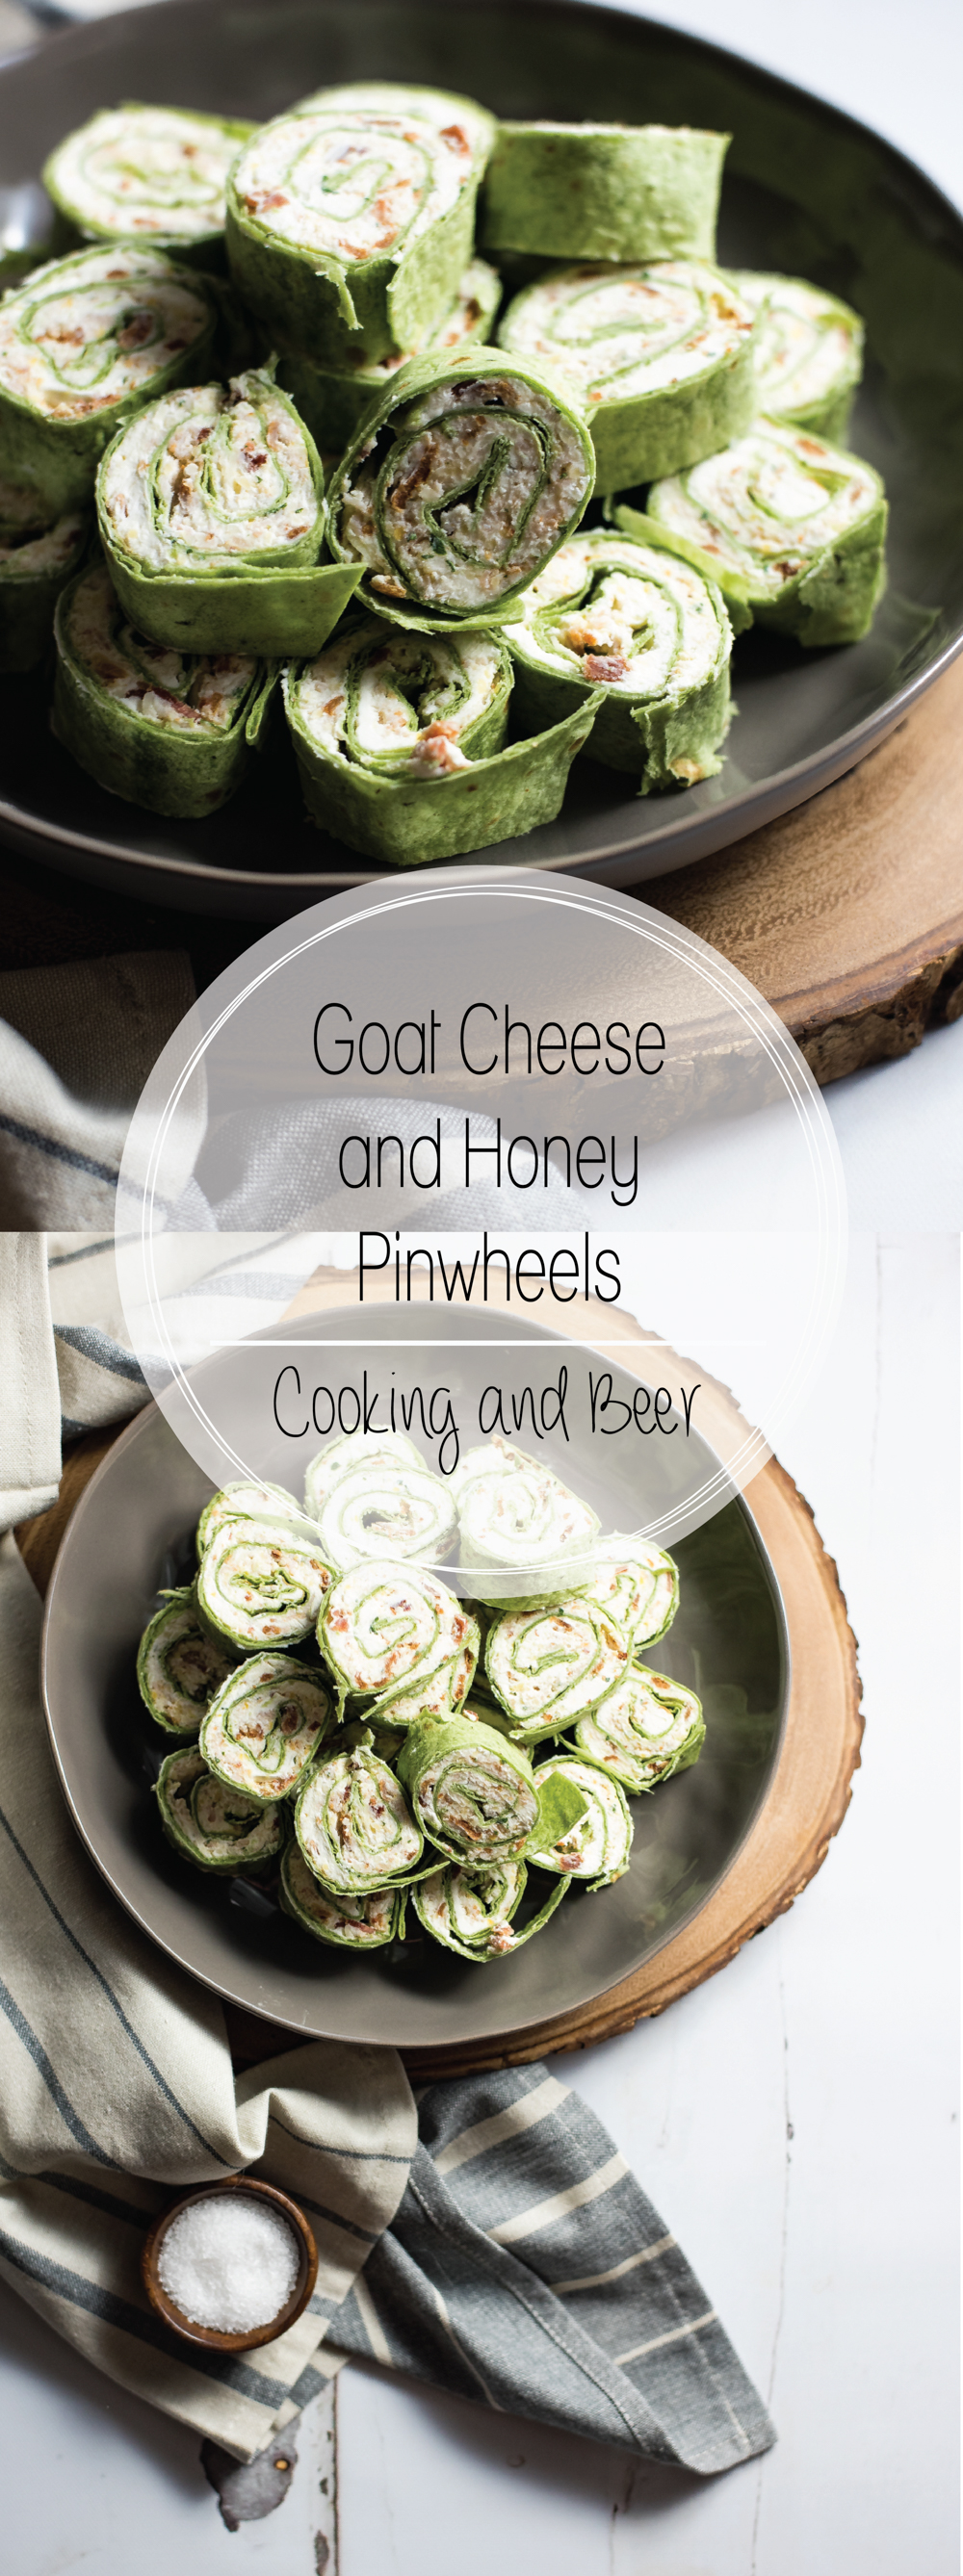 Goat cheese and honey turkey pinwheels are the perfect bite-sized snack. They are great for game day shindigs or dinner parties!